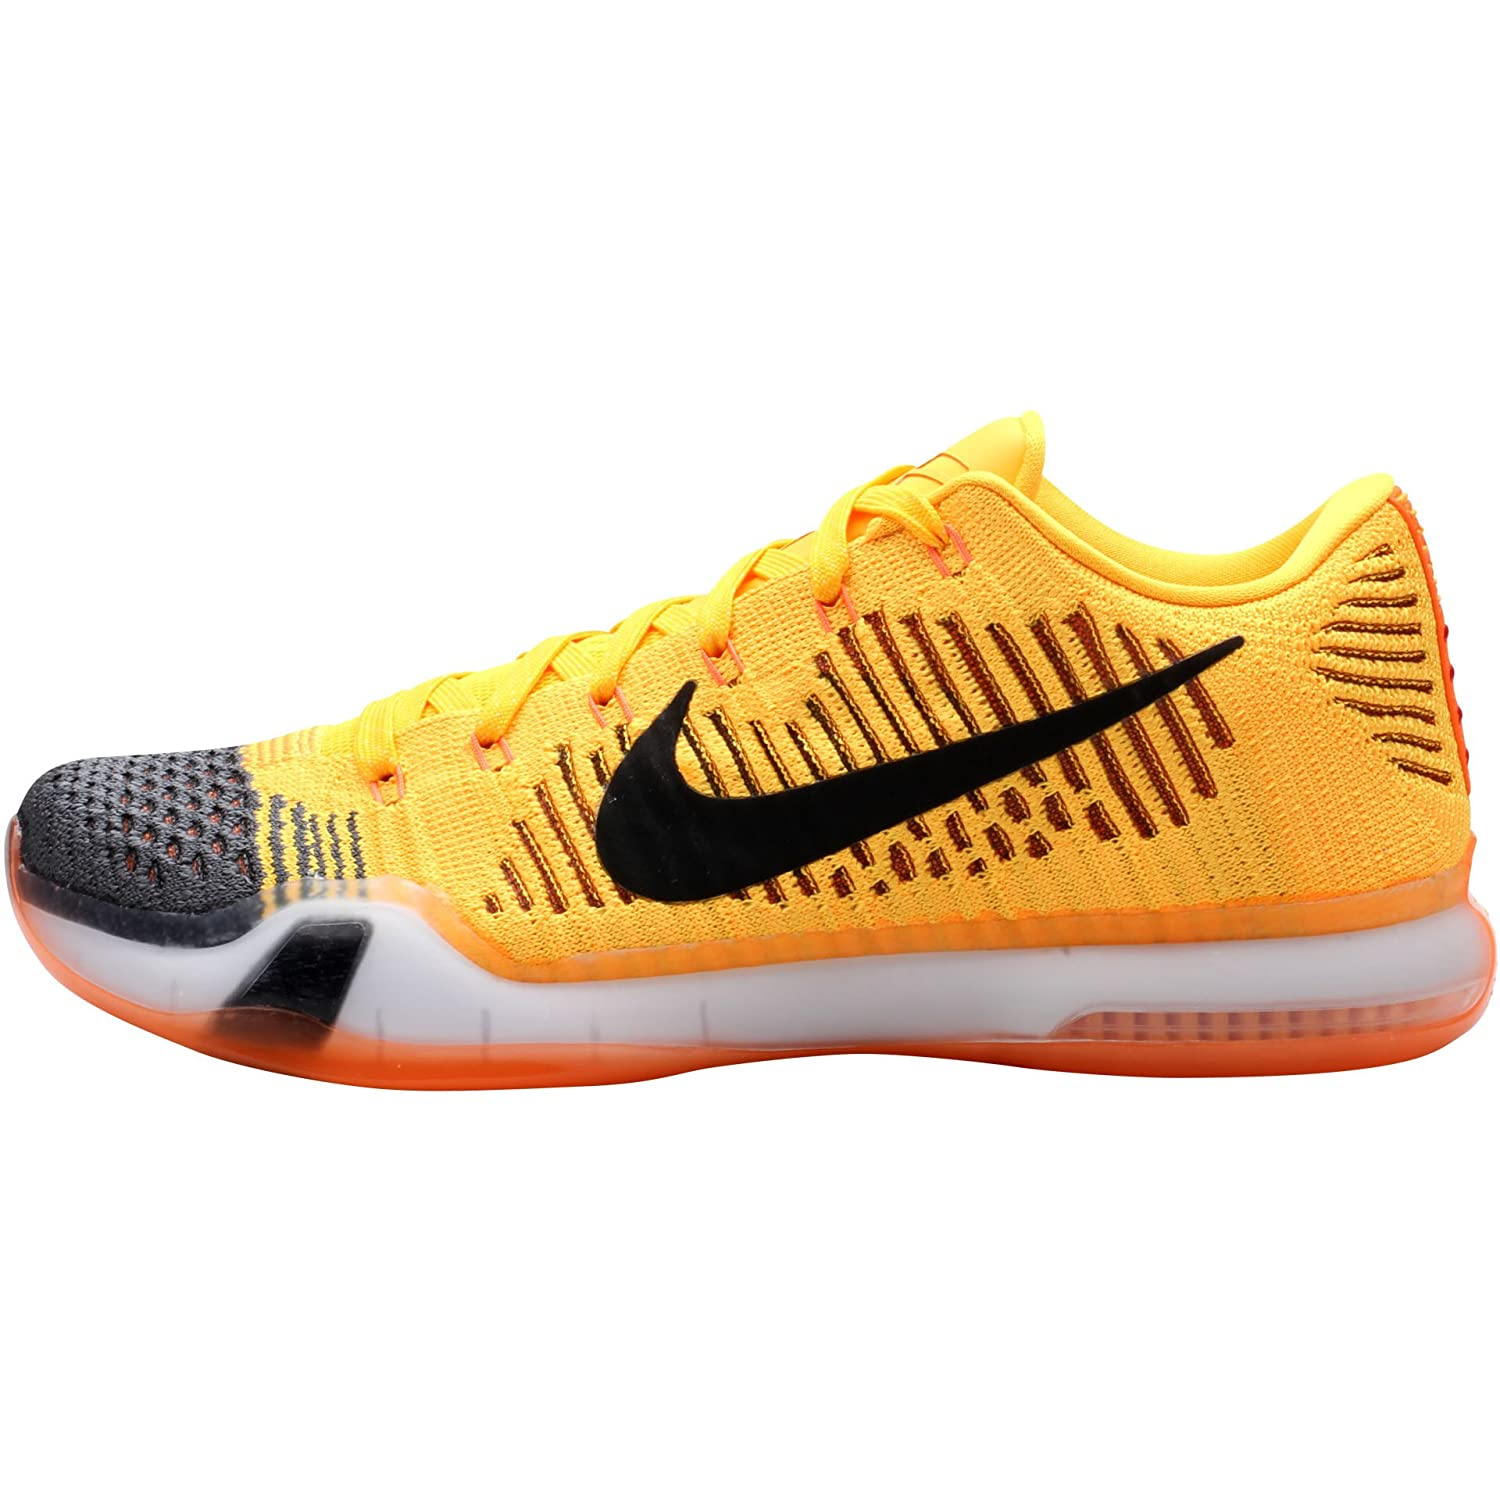 new product 54a27 44d7a Nike Men s Kobe X Elite Low, Rivalry-Total Orange Black-Laser Orange-TMBLD  G, 8 M US  Amazon.in  Shoes   Handbags